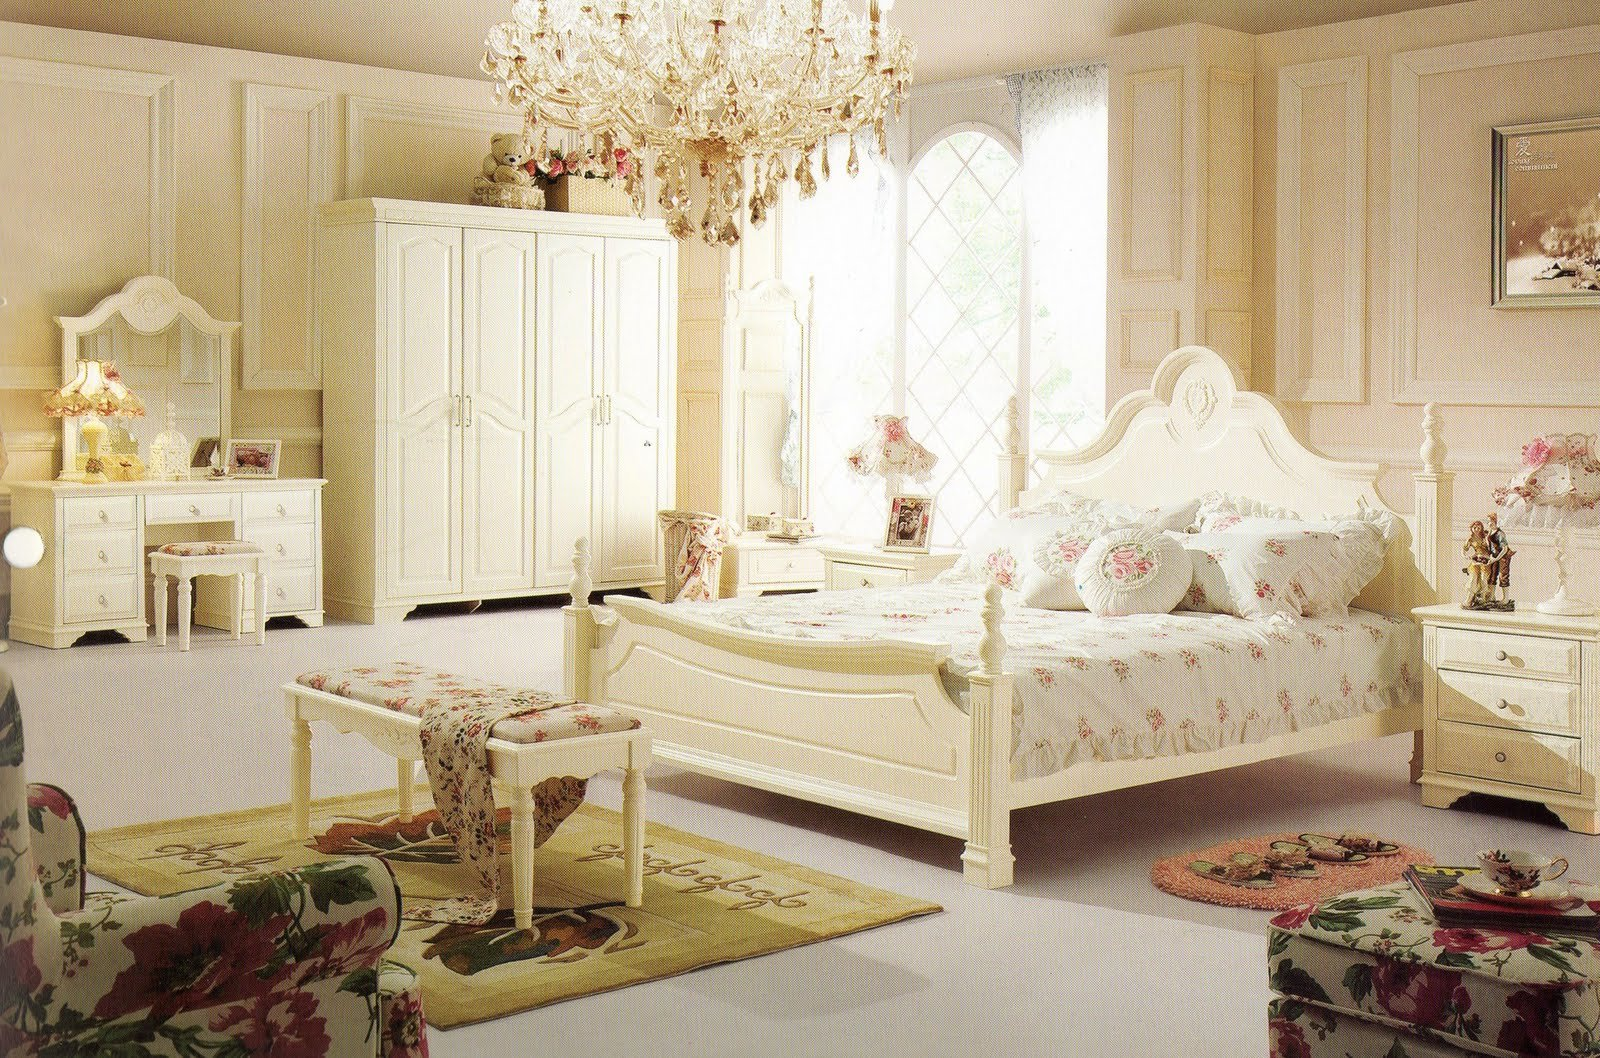 Best Fsd New Arrival Of Our Beautiful And Elegant French Style With Pictures